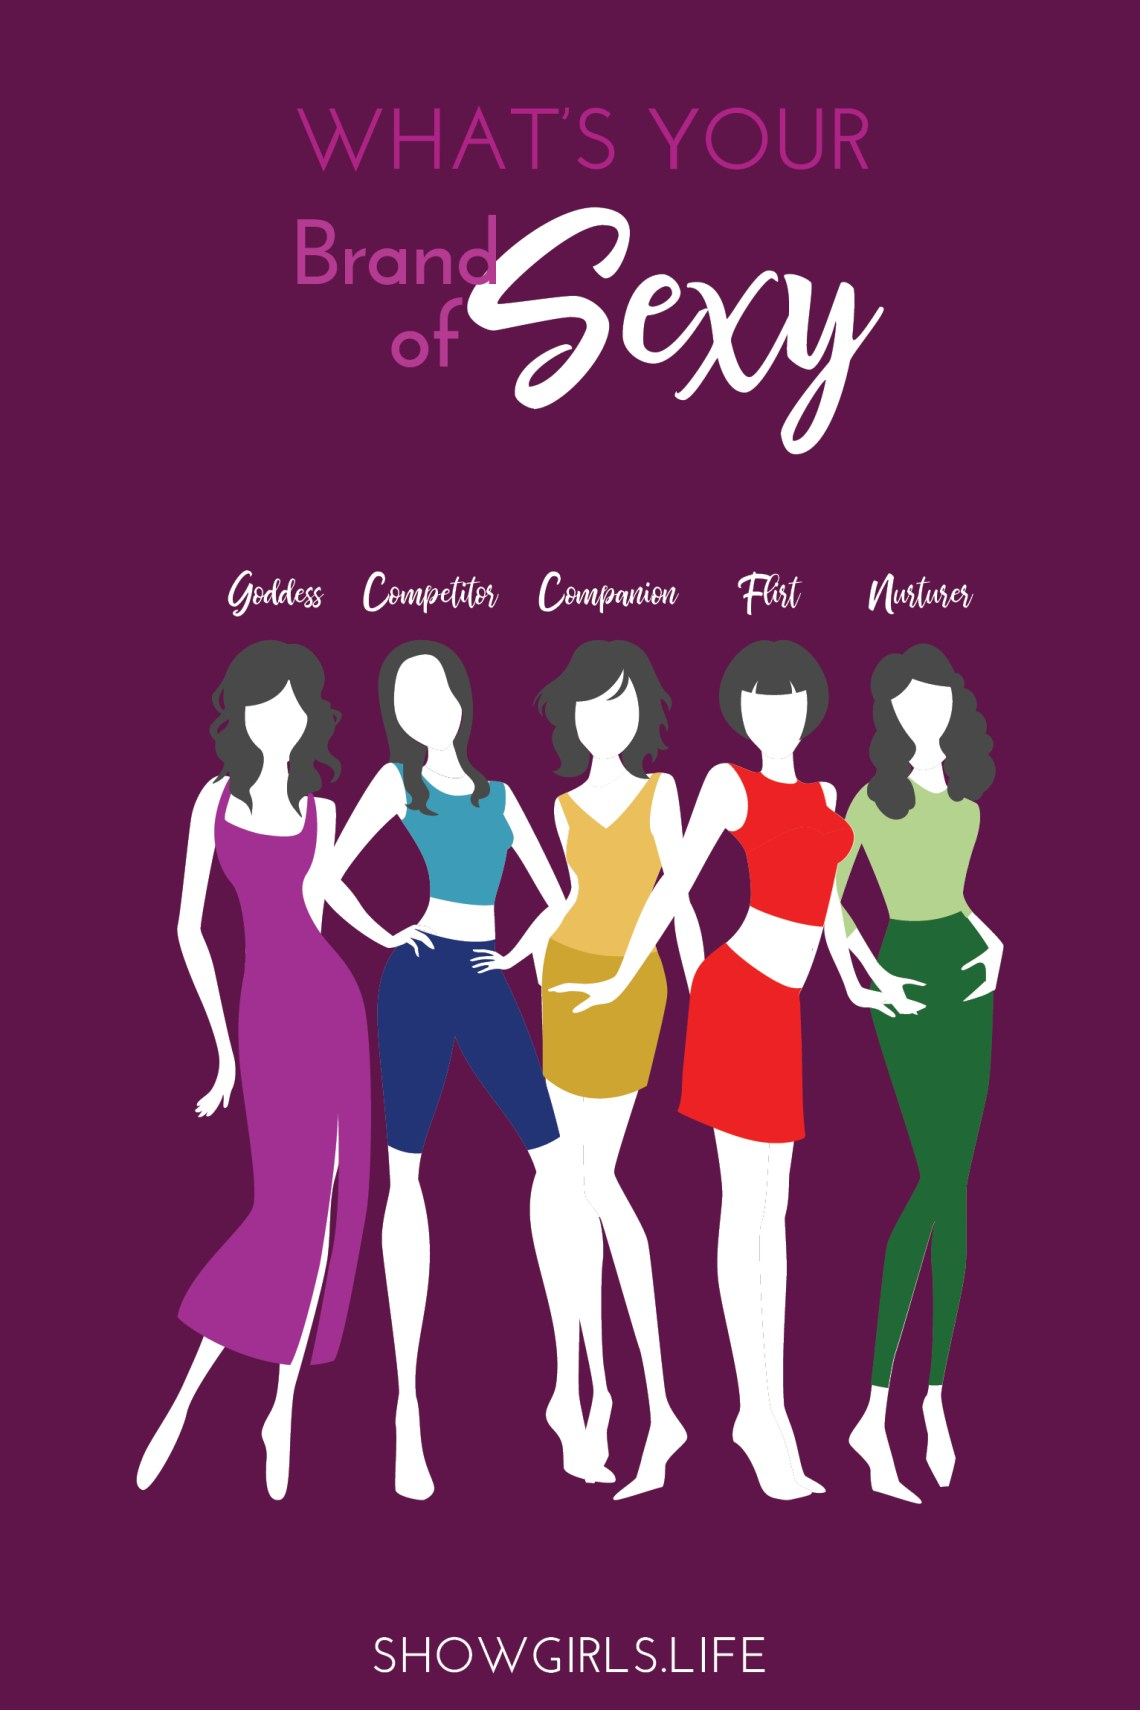 What's Your Brand of Sexy? Showgirls.Life Blog Find out what feminine energy you use most in this world